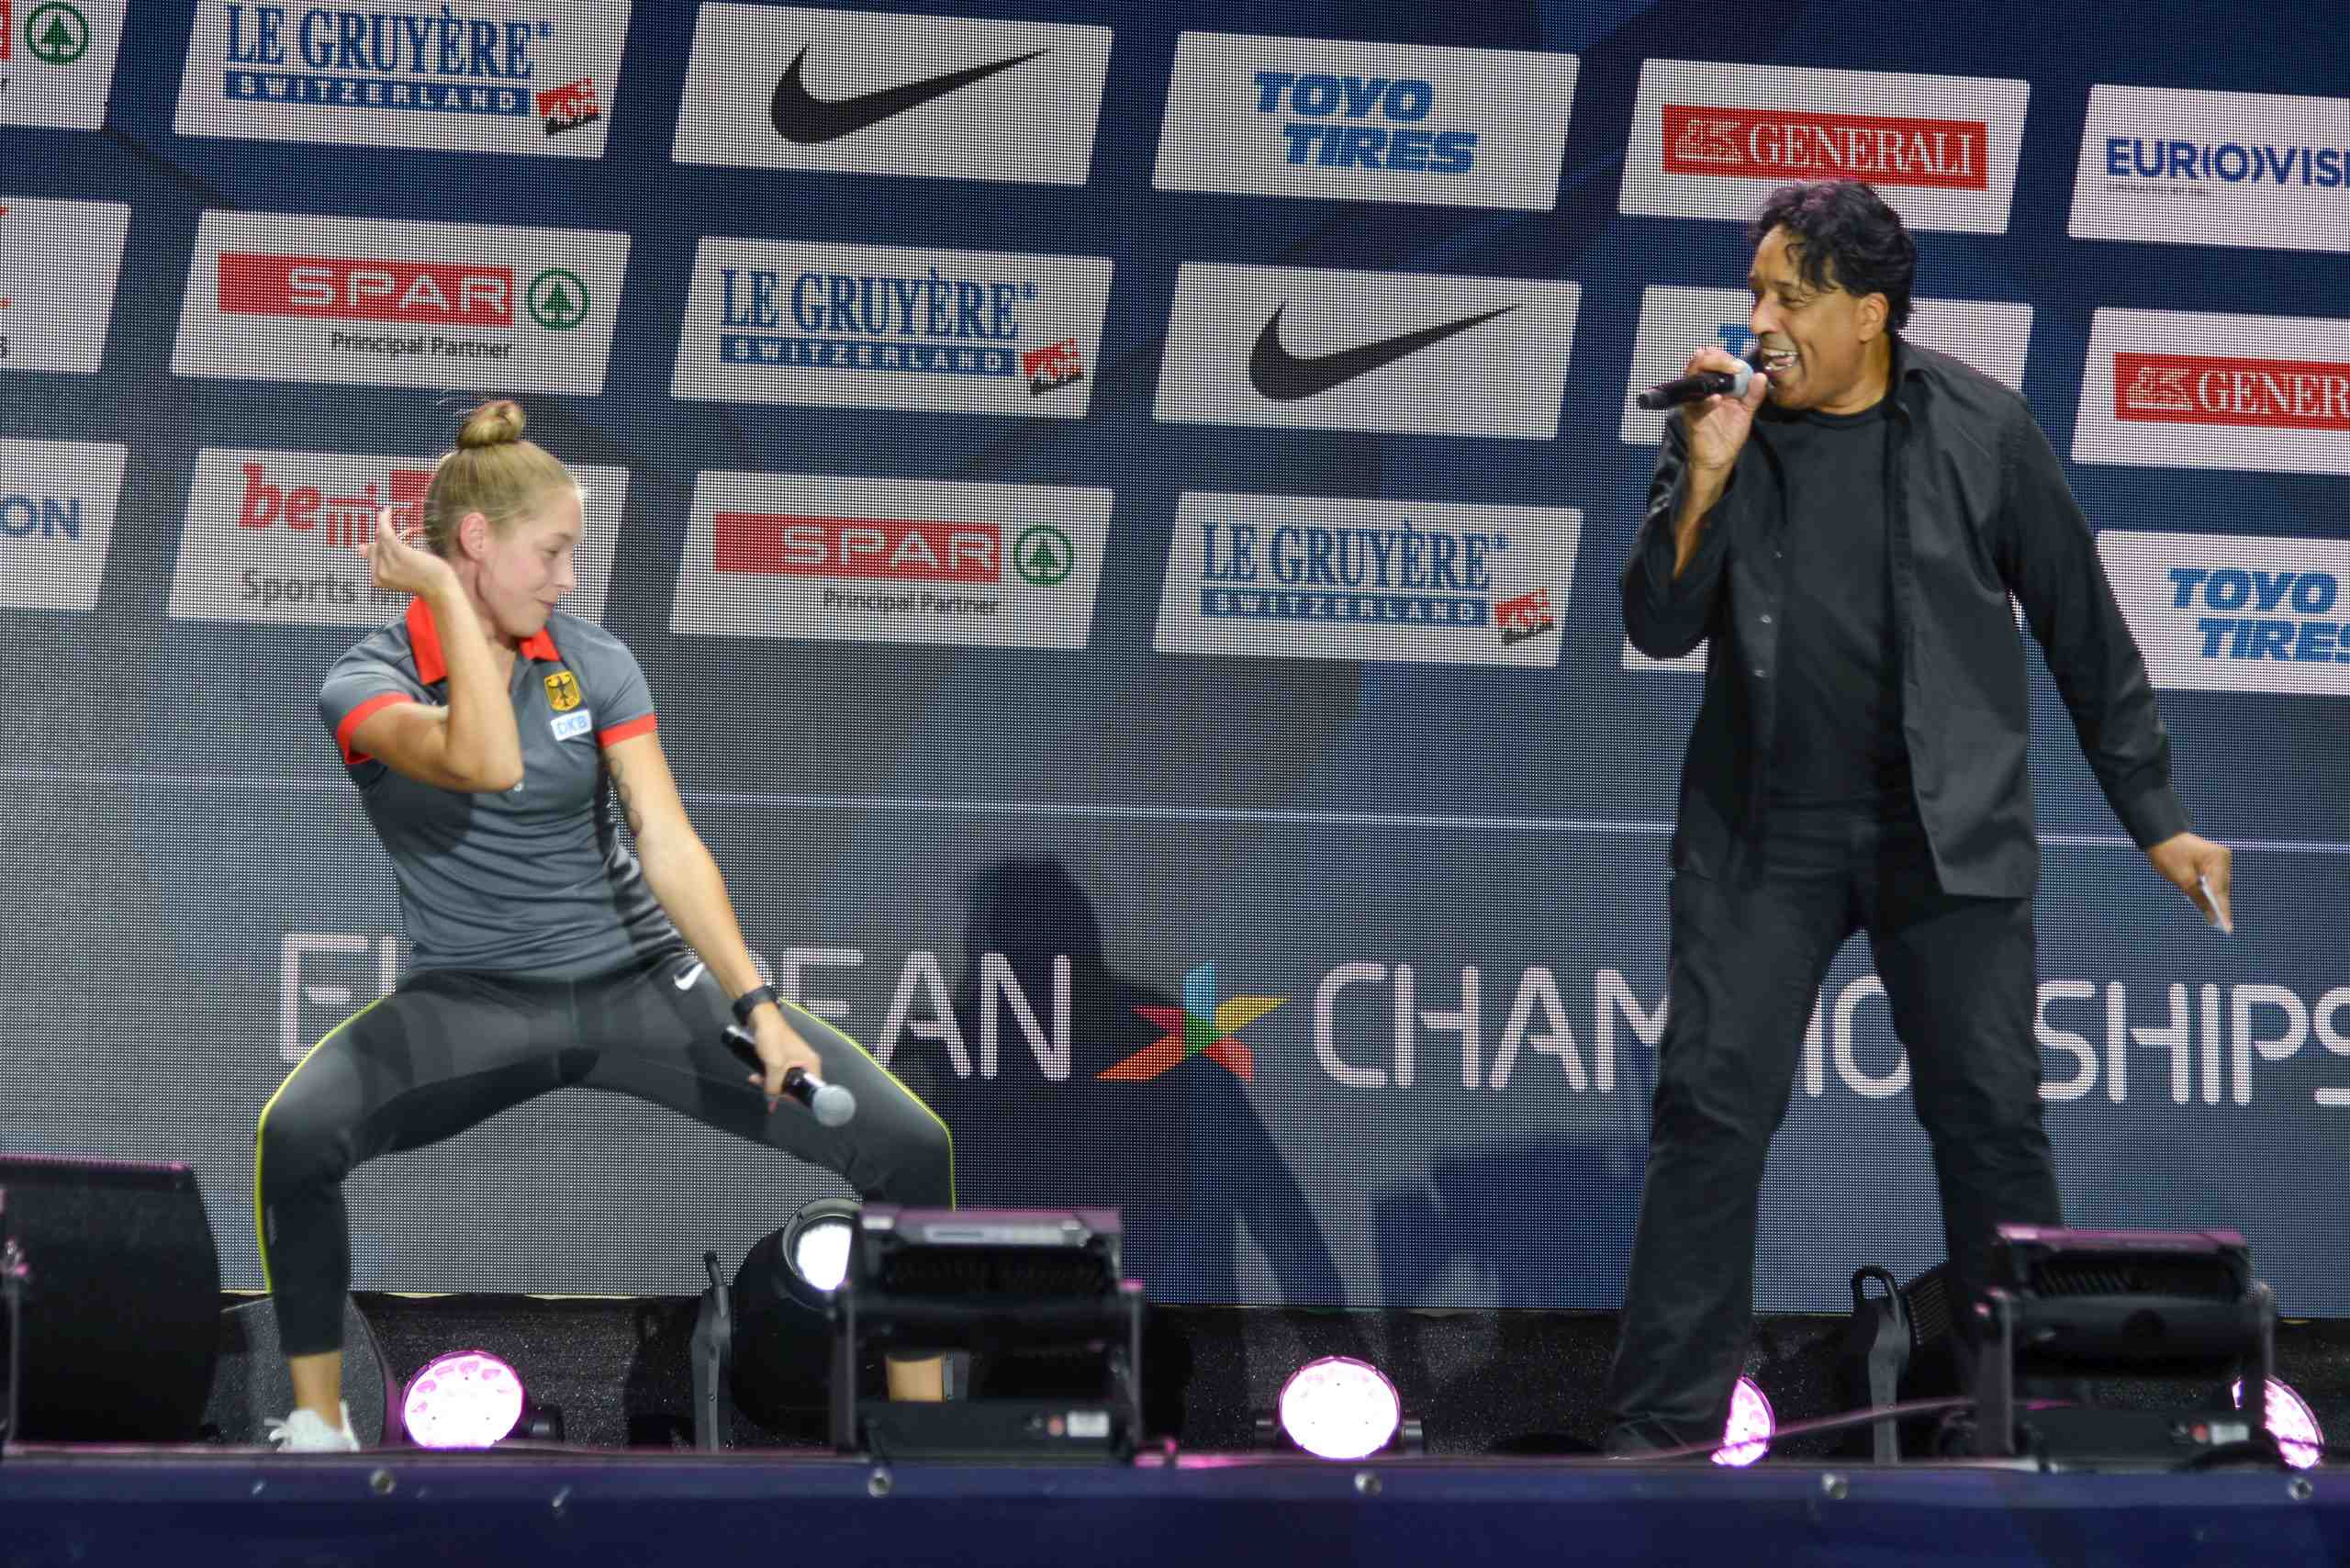 Gina Lückenkemper dances while host Cherno Jobatey raps at the medal ceremony of the European Athletics Champioships 2018